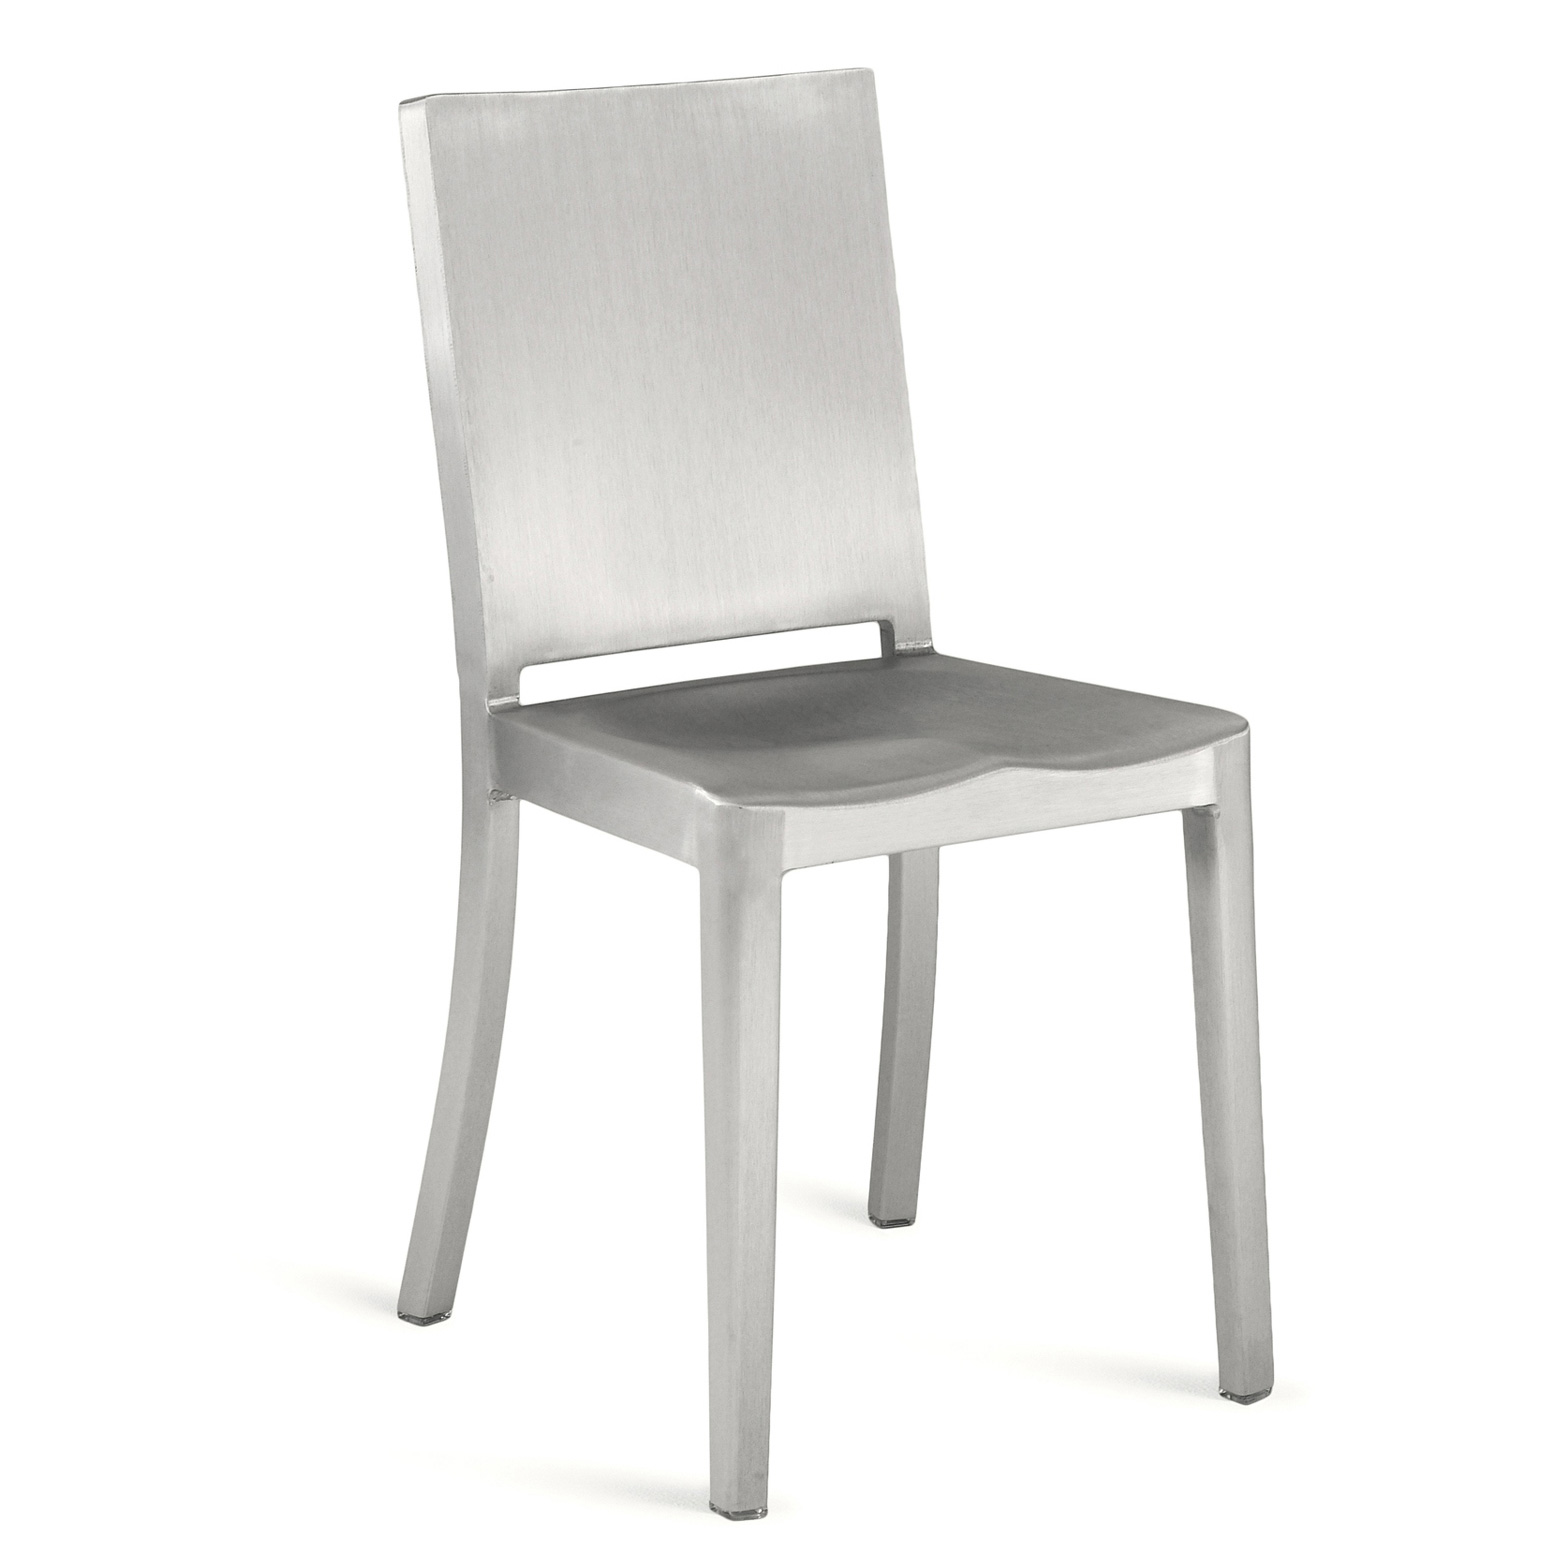 Philip Starck Emeco Hudson Chair Aluminium Brushed Designed By Philippe Starck